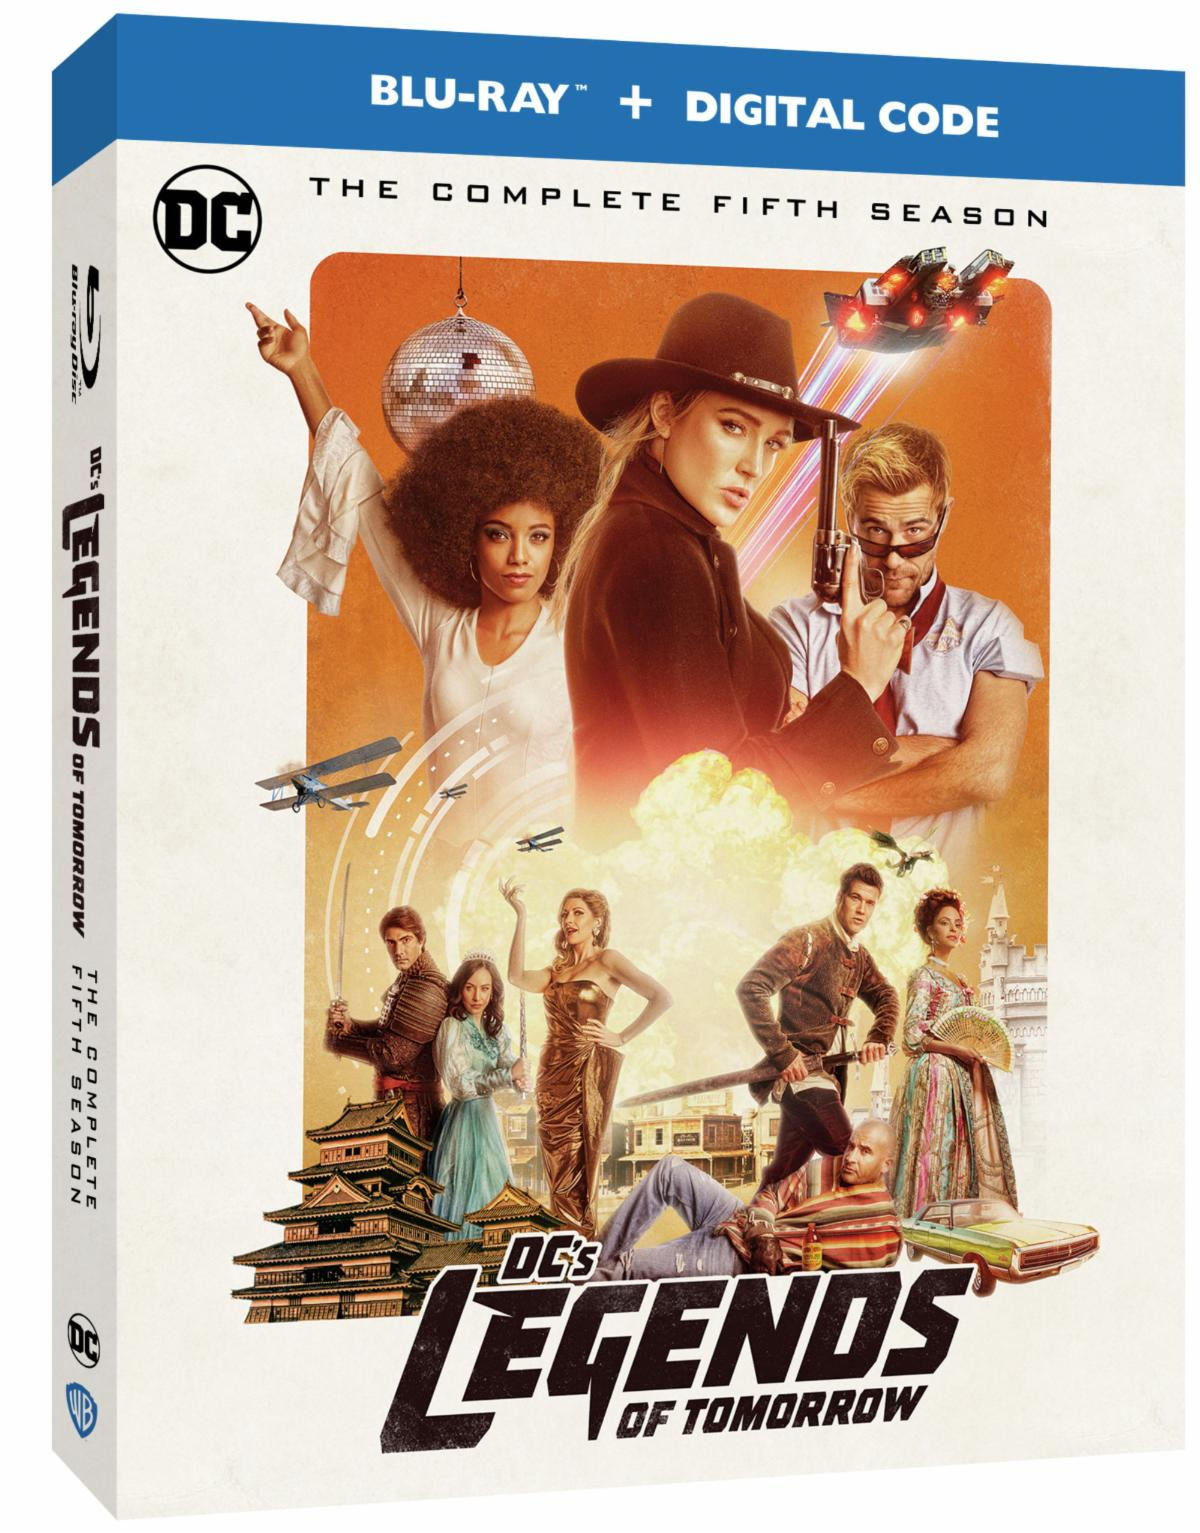 DC's Legends of Tomorrow: The Complete Fifth Season Blu-ray